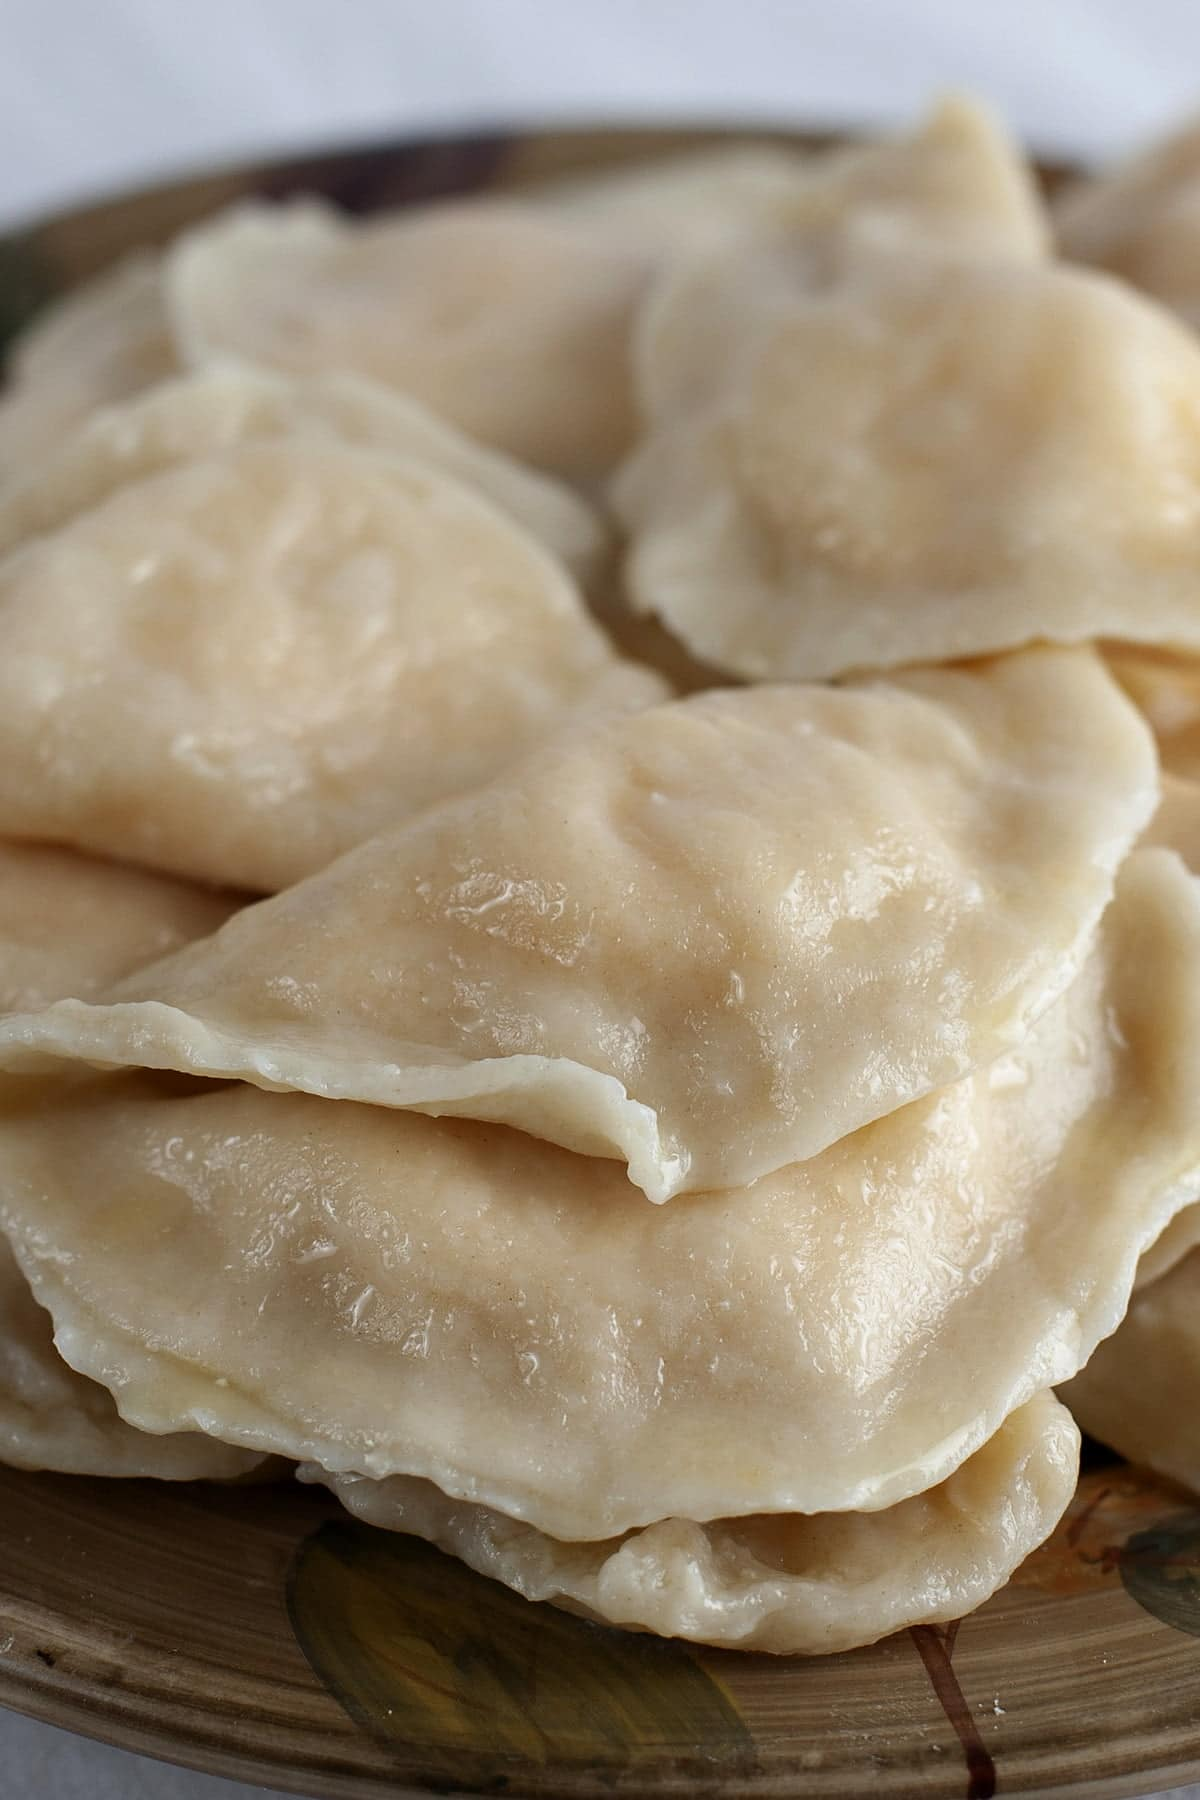 A plate of homemade pierogi - Ukrainian dumplings filled with cheesy potatoes.